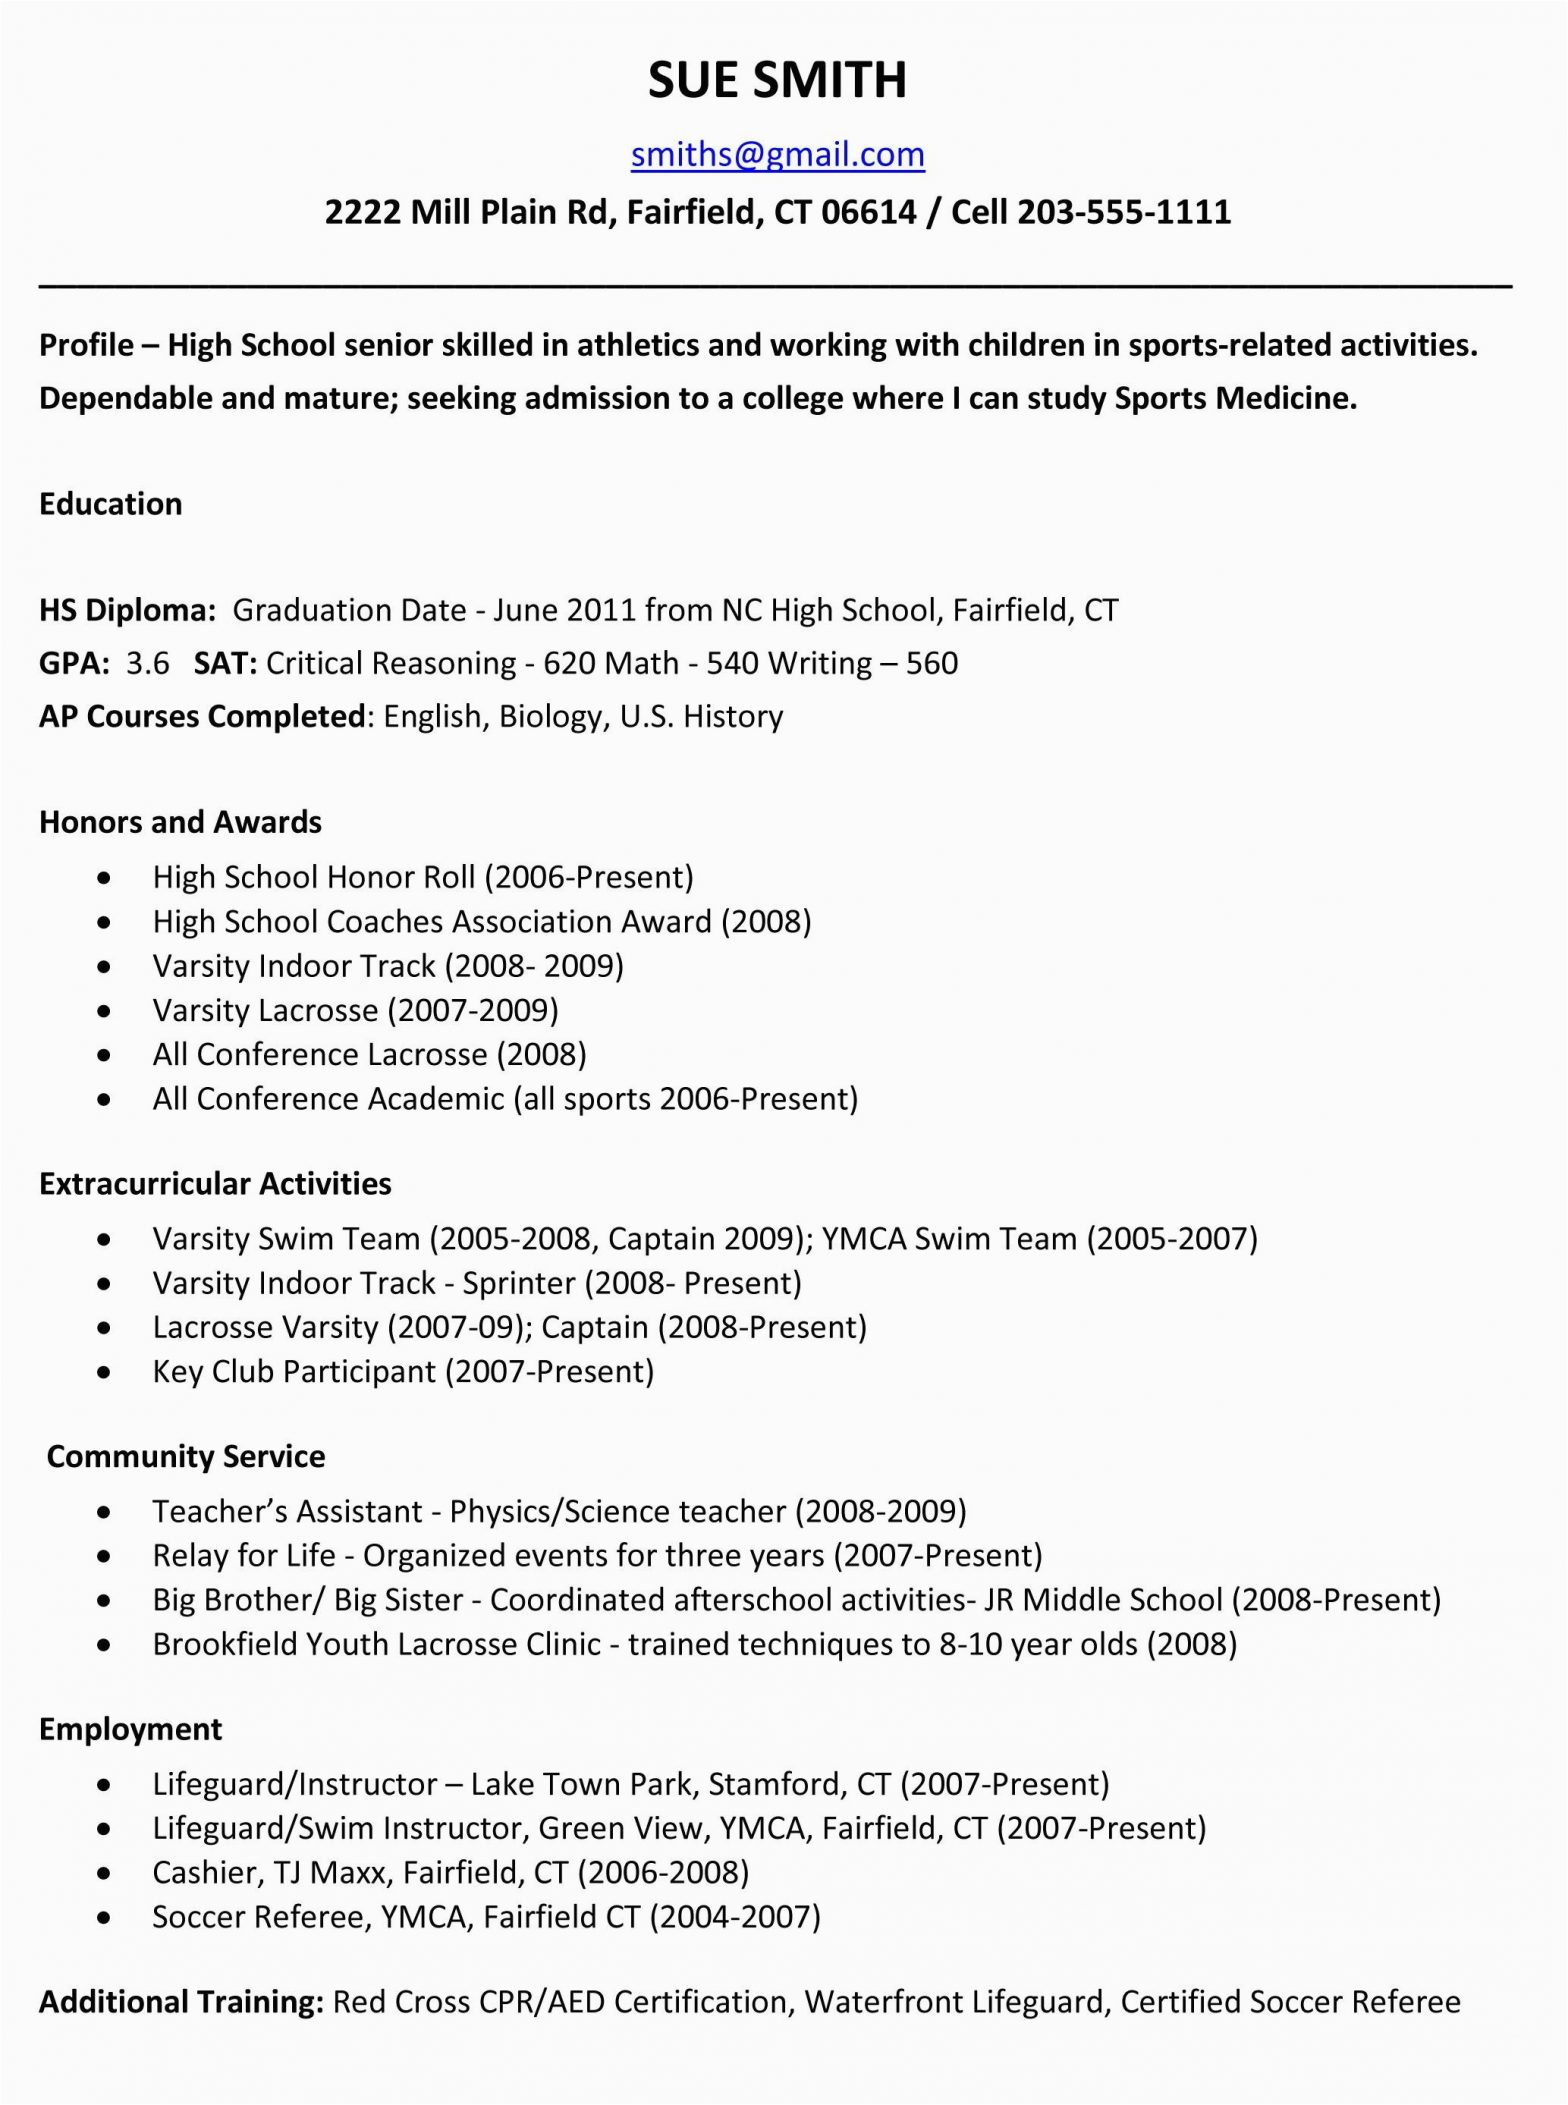 Sample High School Resume for College Application Sample Resumes